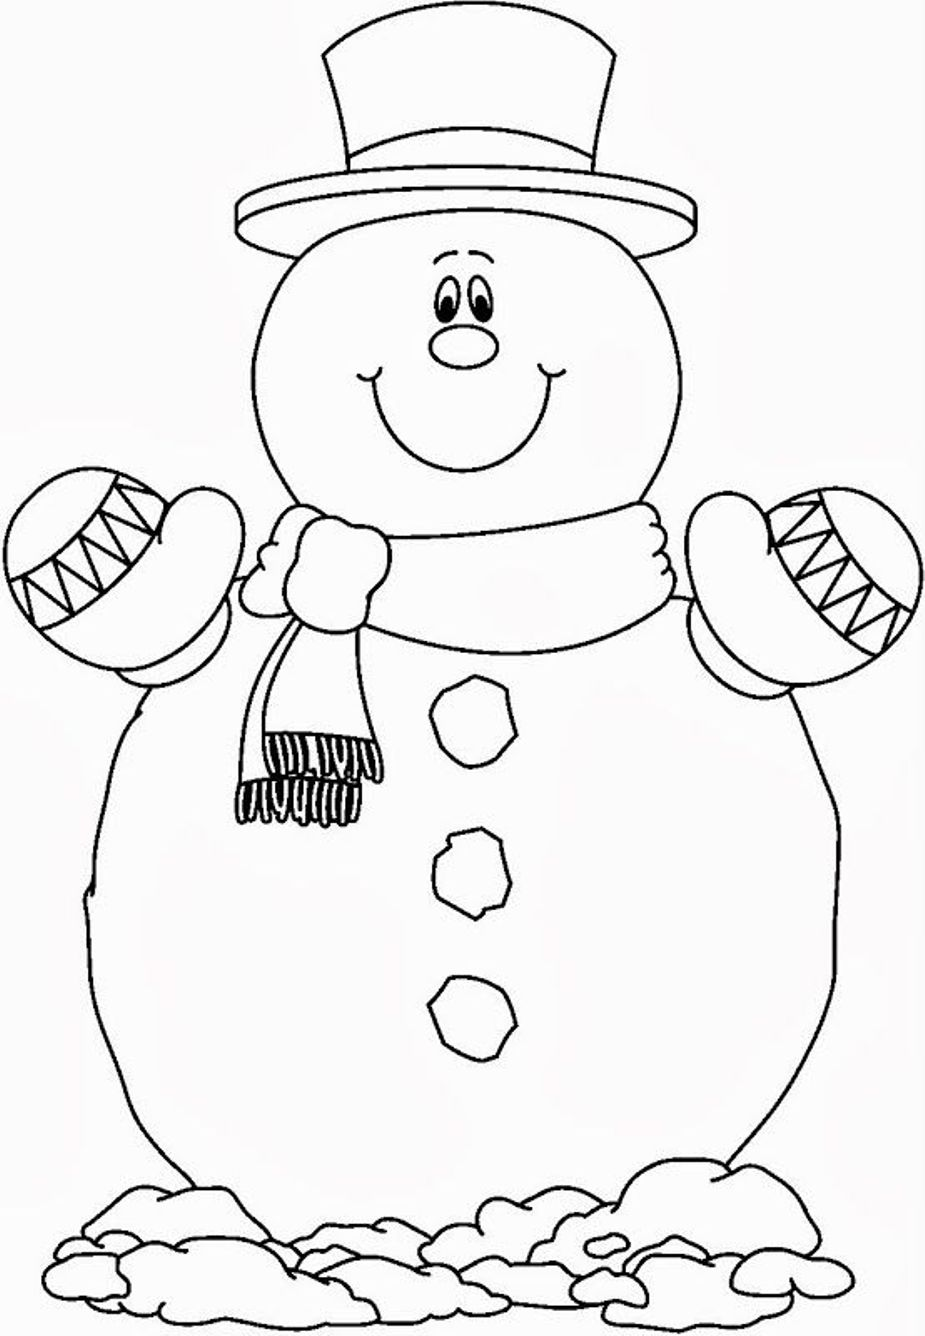 snowman for coloring snowman coloring pages at getcoloringscom free snowman coloring for